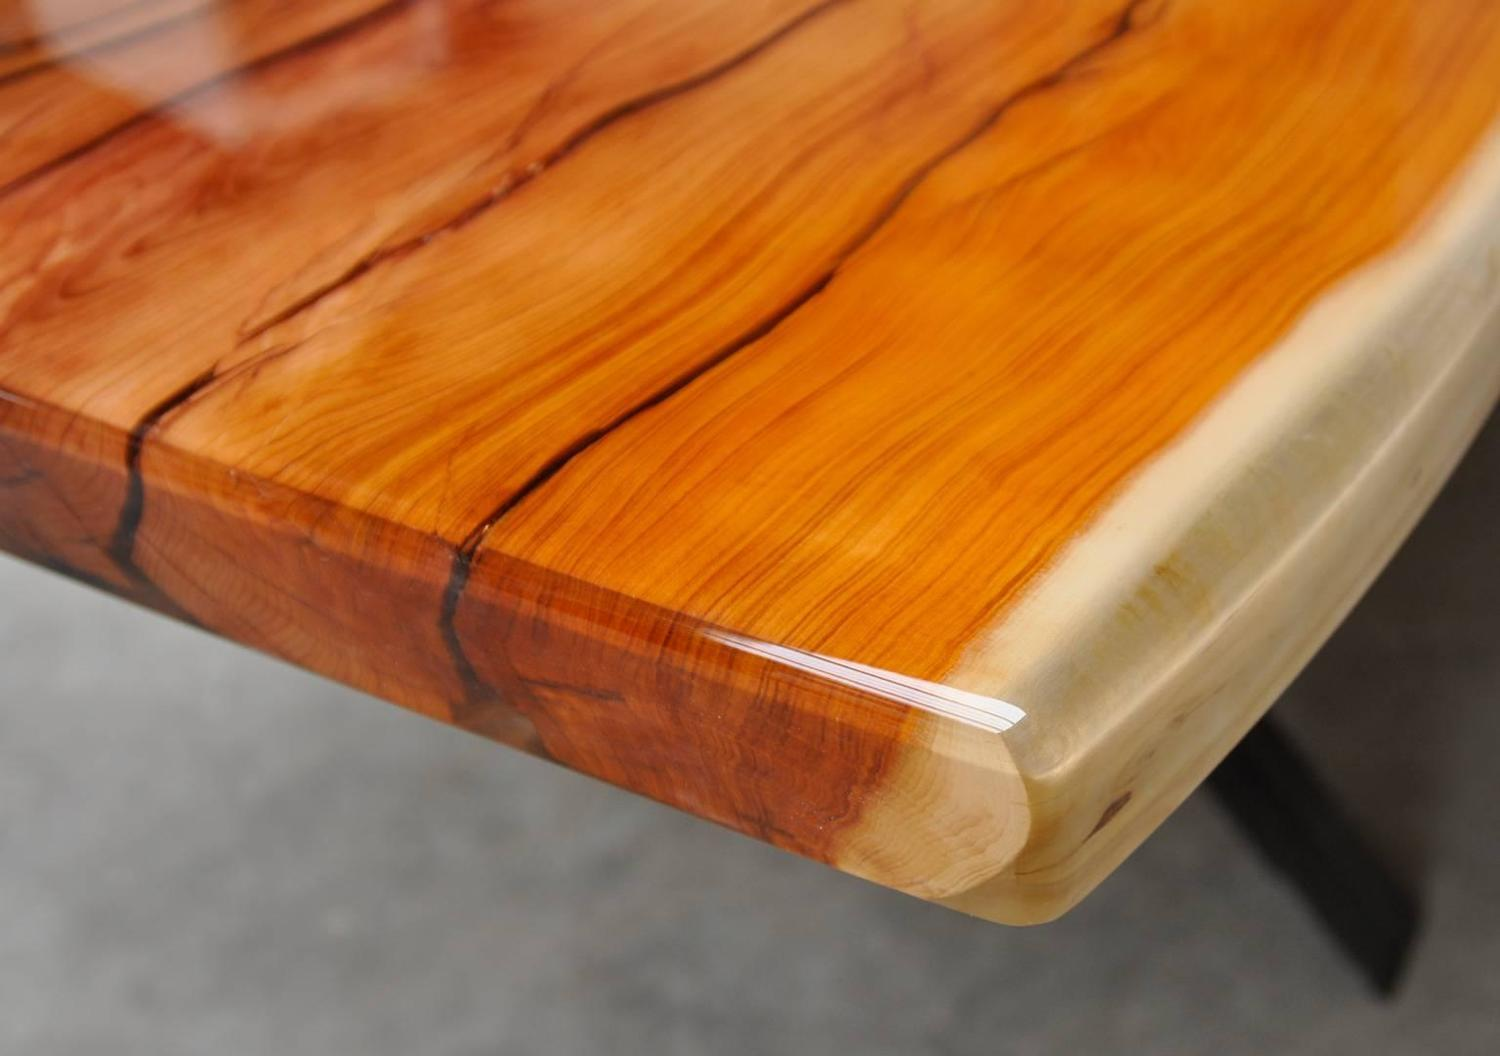 Superb img of Table Made Out of One Single Piece of Wood from a 1500 Year Old Taxus  with #B96112 color and 1500x1056 pixels